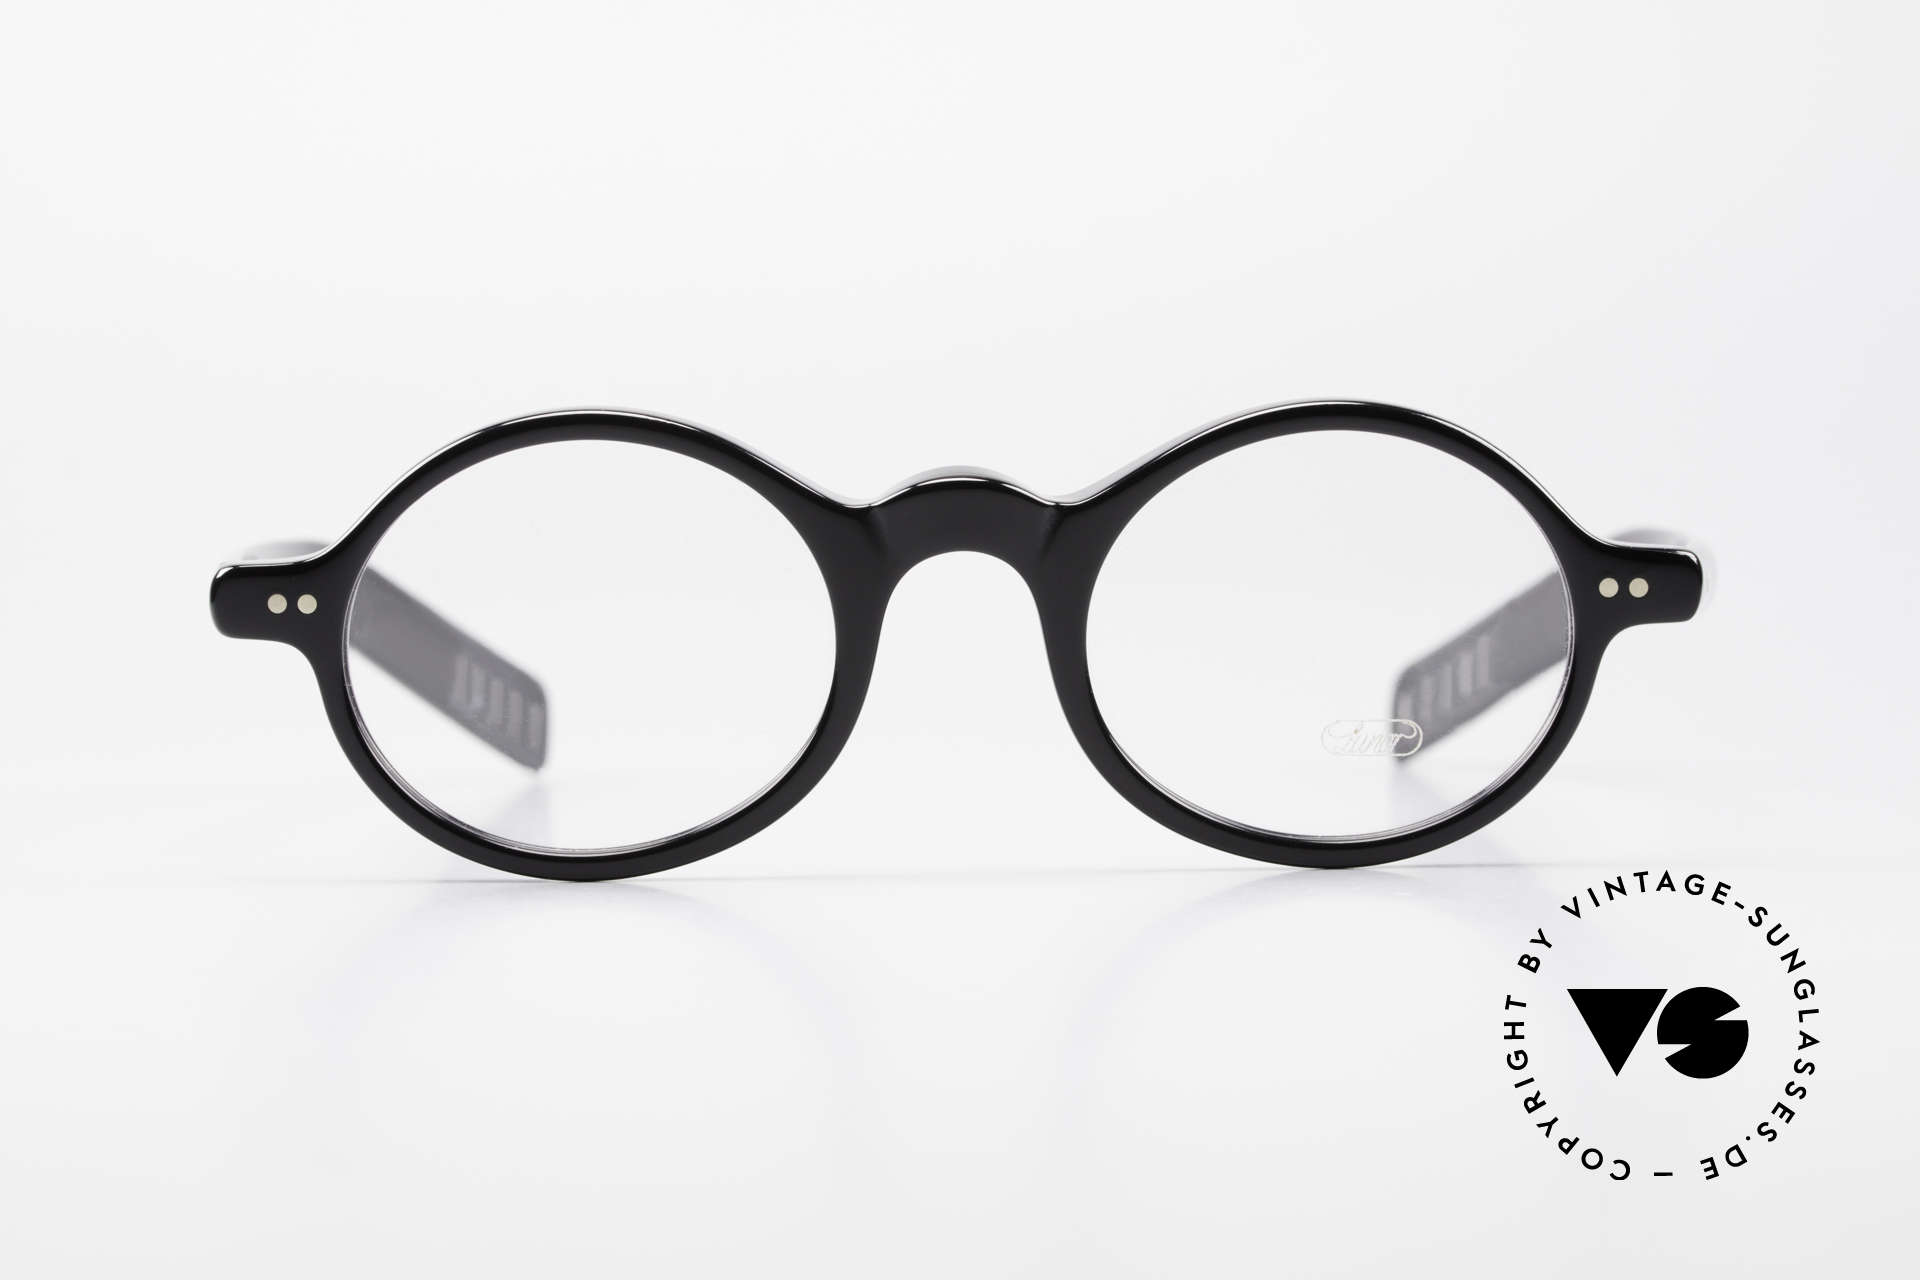 Lunor A52 Oval Eyeglasses Black Acetate, riveted hinges; cut precise to the tenth of a millimeter, Made for Men and Women